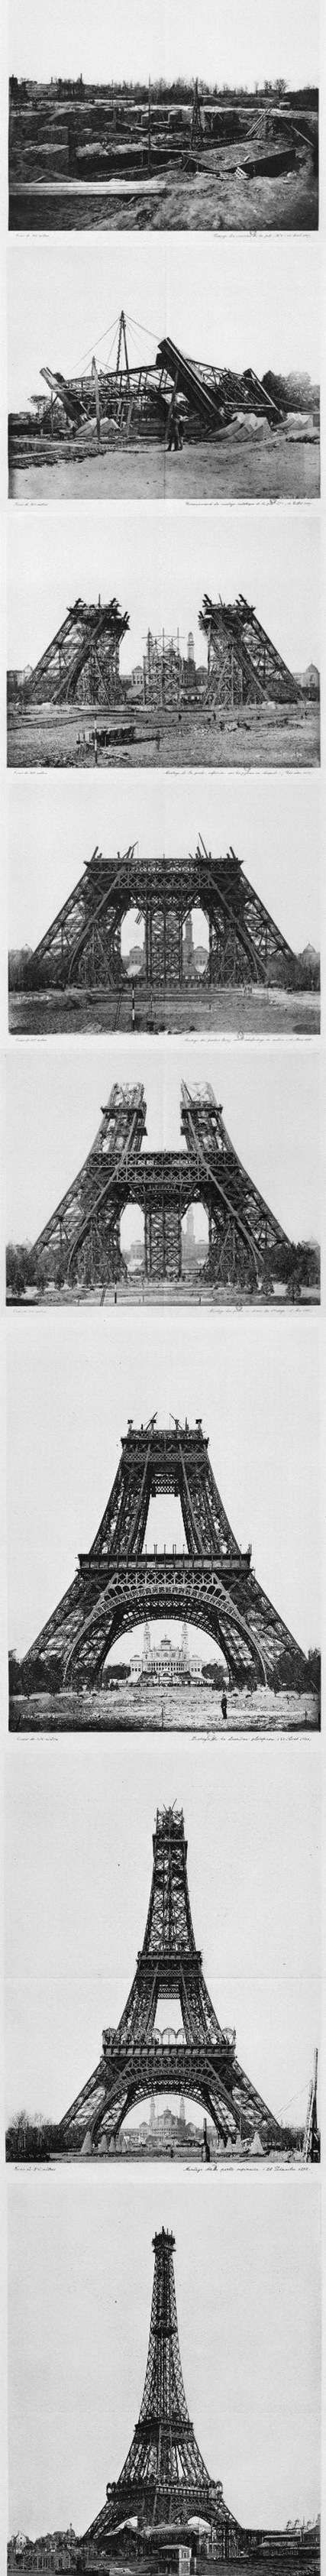 218 best images about france on pinterest see more best ideas about cars meals on wheels and. Black Bedroom Furniture Sets. Home Design Ideas